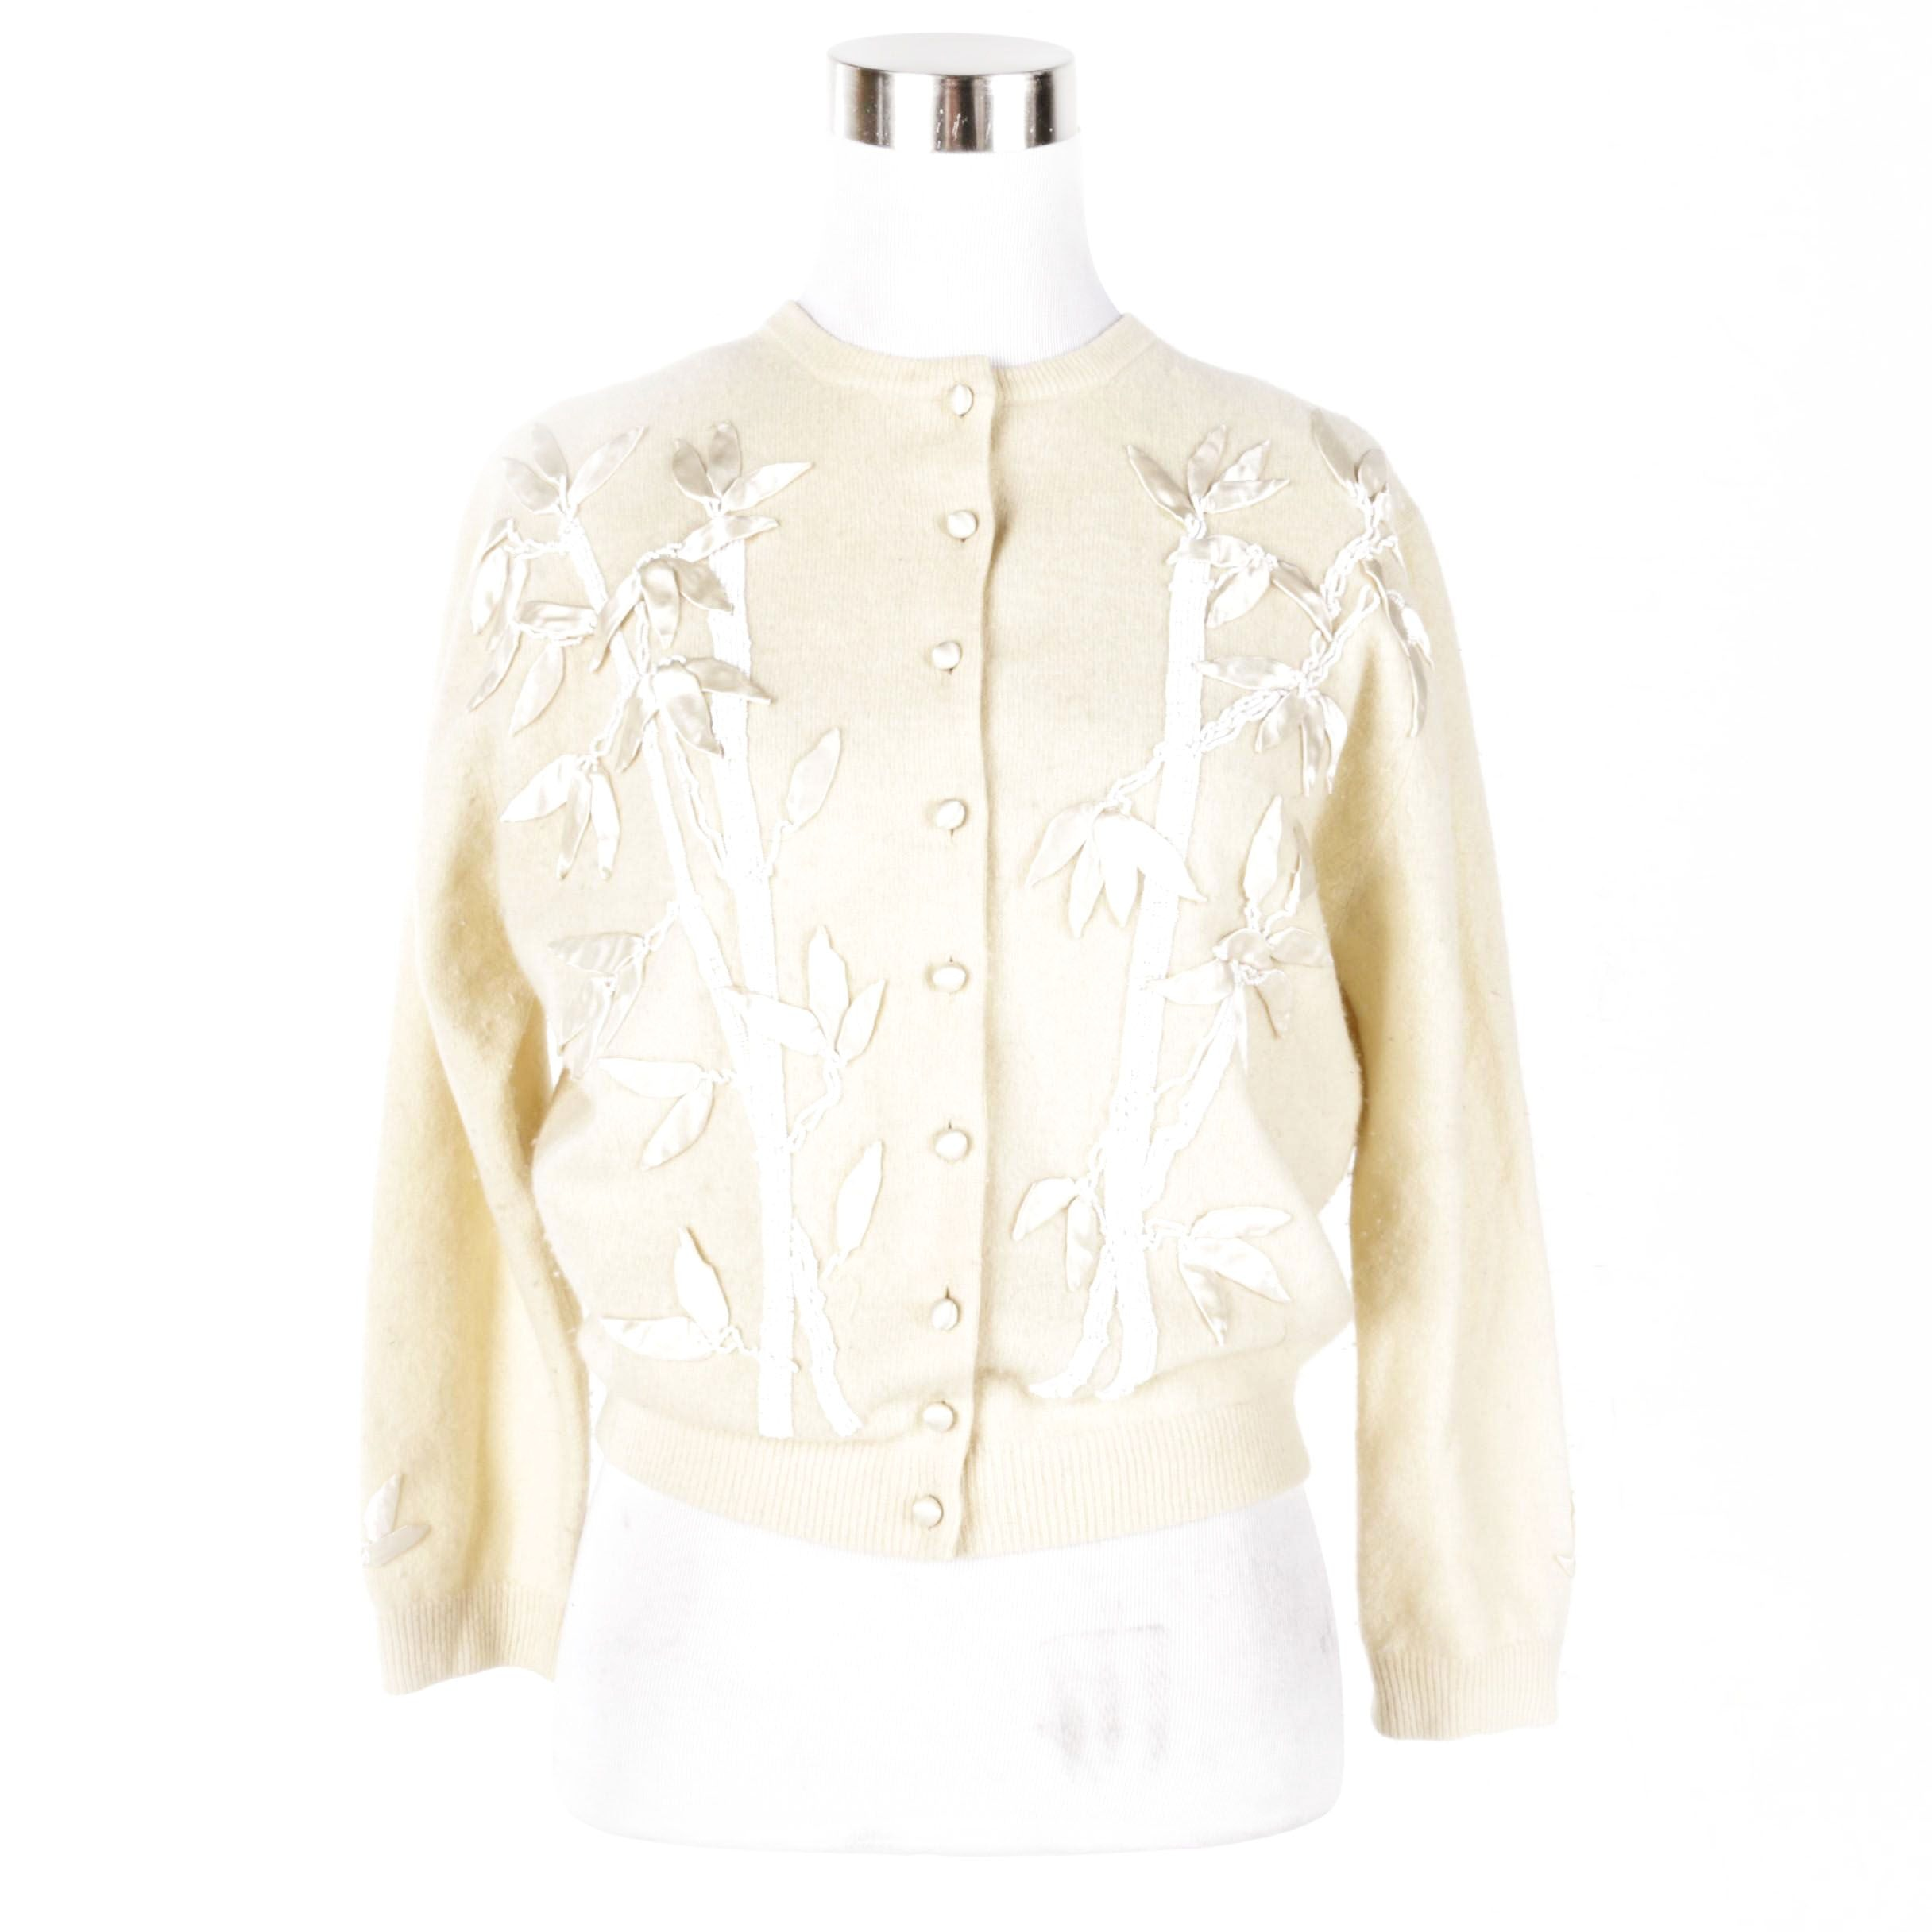 Women's Vintage Beaded and Satin Adorned Cardigan by Young Blum's-Vogue Shop